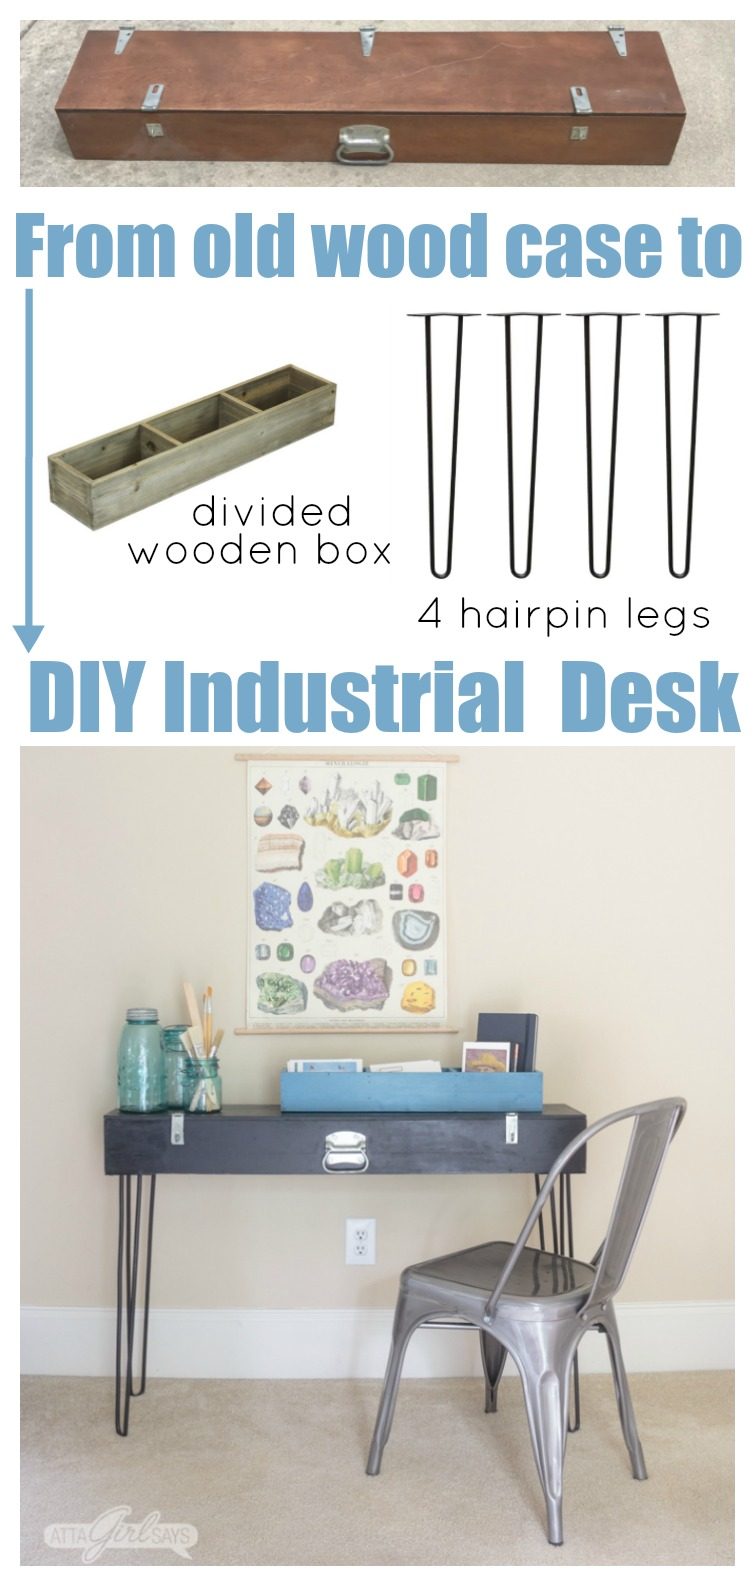 Collage photo showing a black hairpin leg desk with art supplies on top of it. The collage also has photos of a wooden shotgun box, a divided wooden box and four hairpin legs used to make the desk.